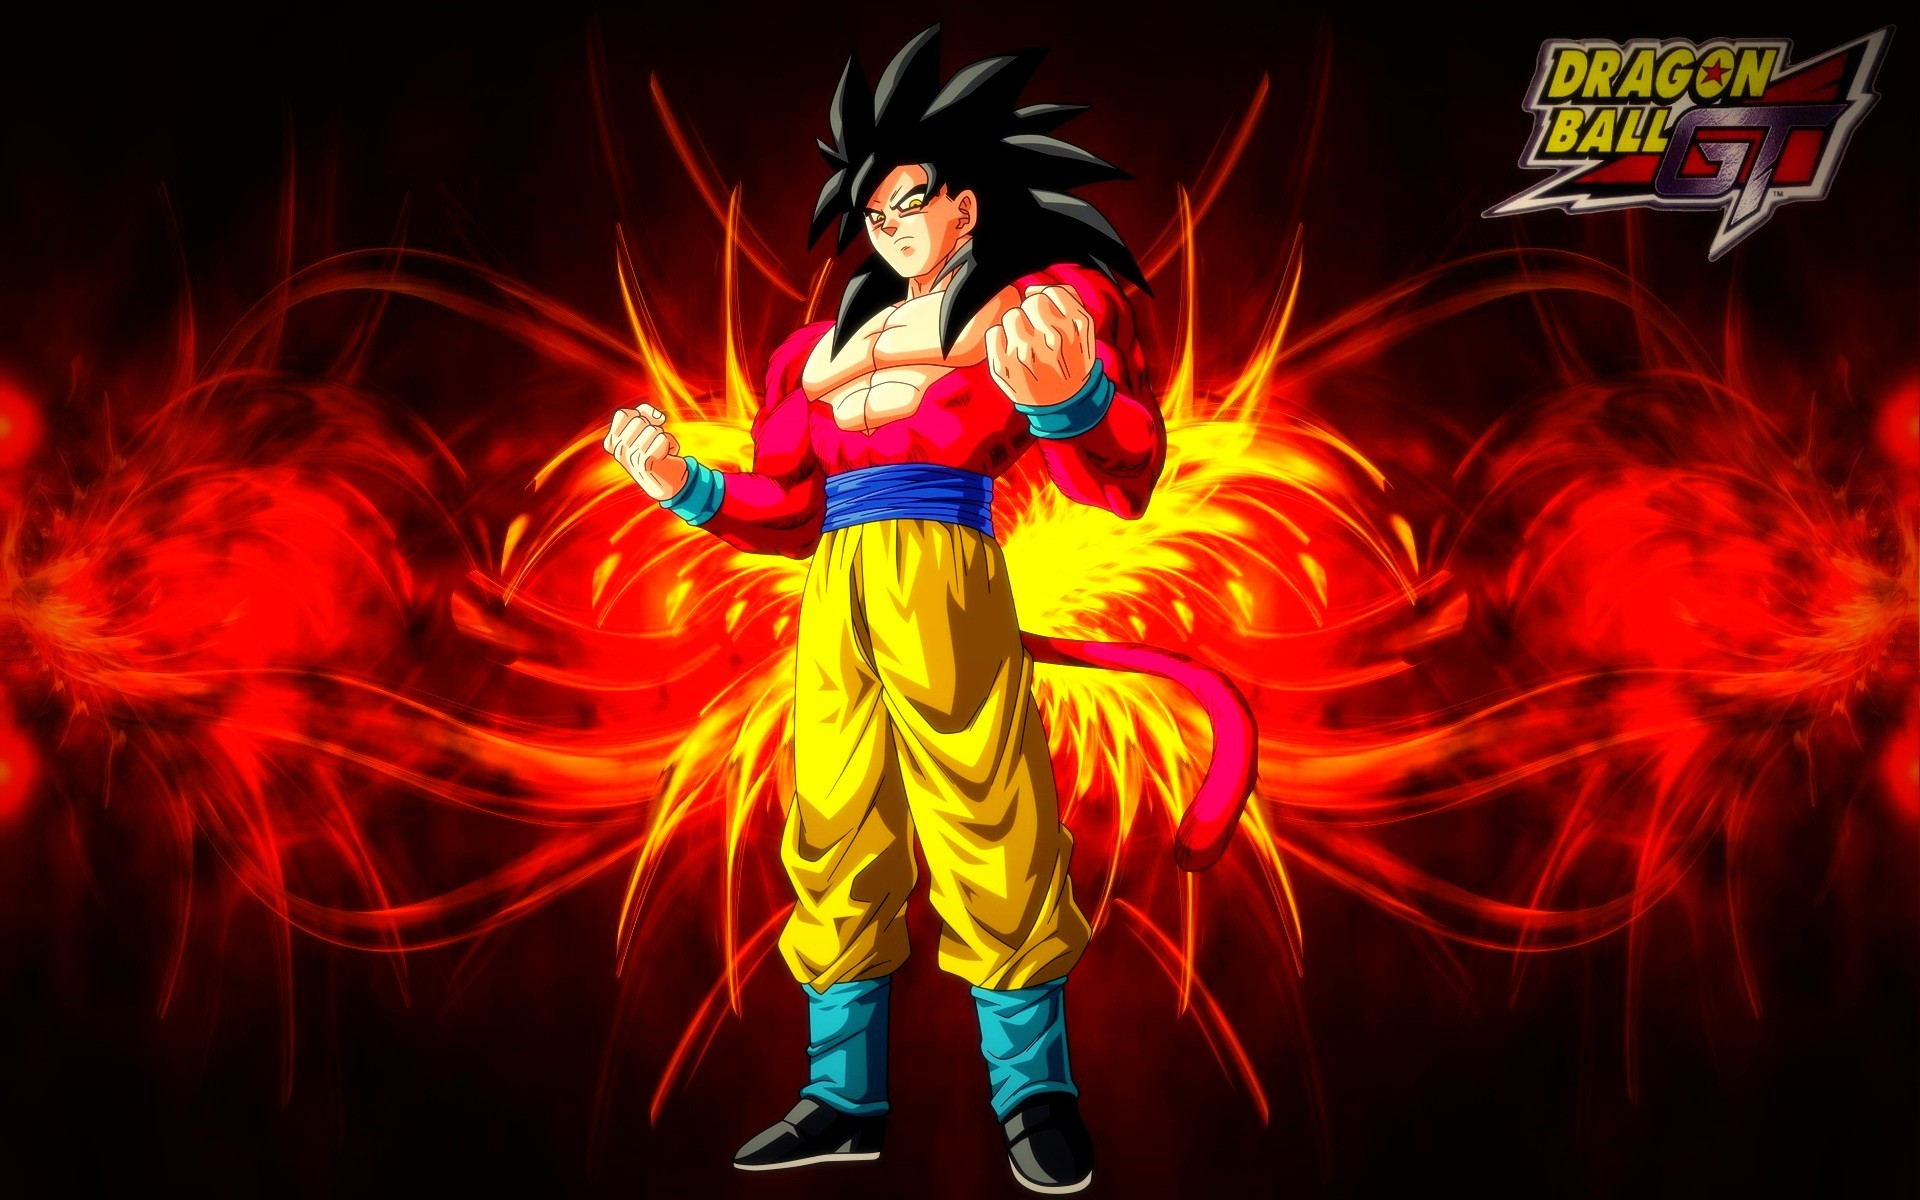 Dragon ball gt hd wallpapers wallpapertag - Dragon ball gt goku wallpaper ...